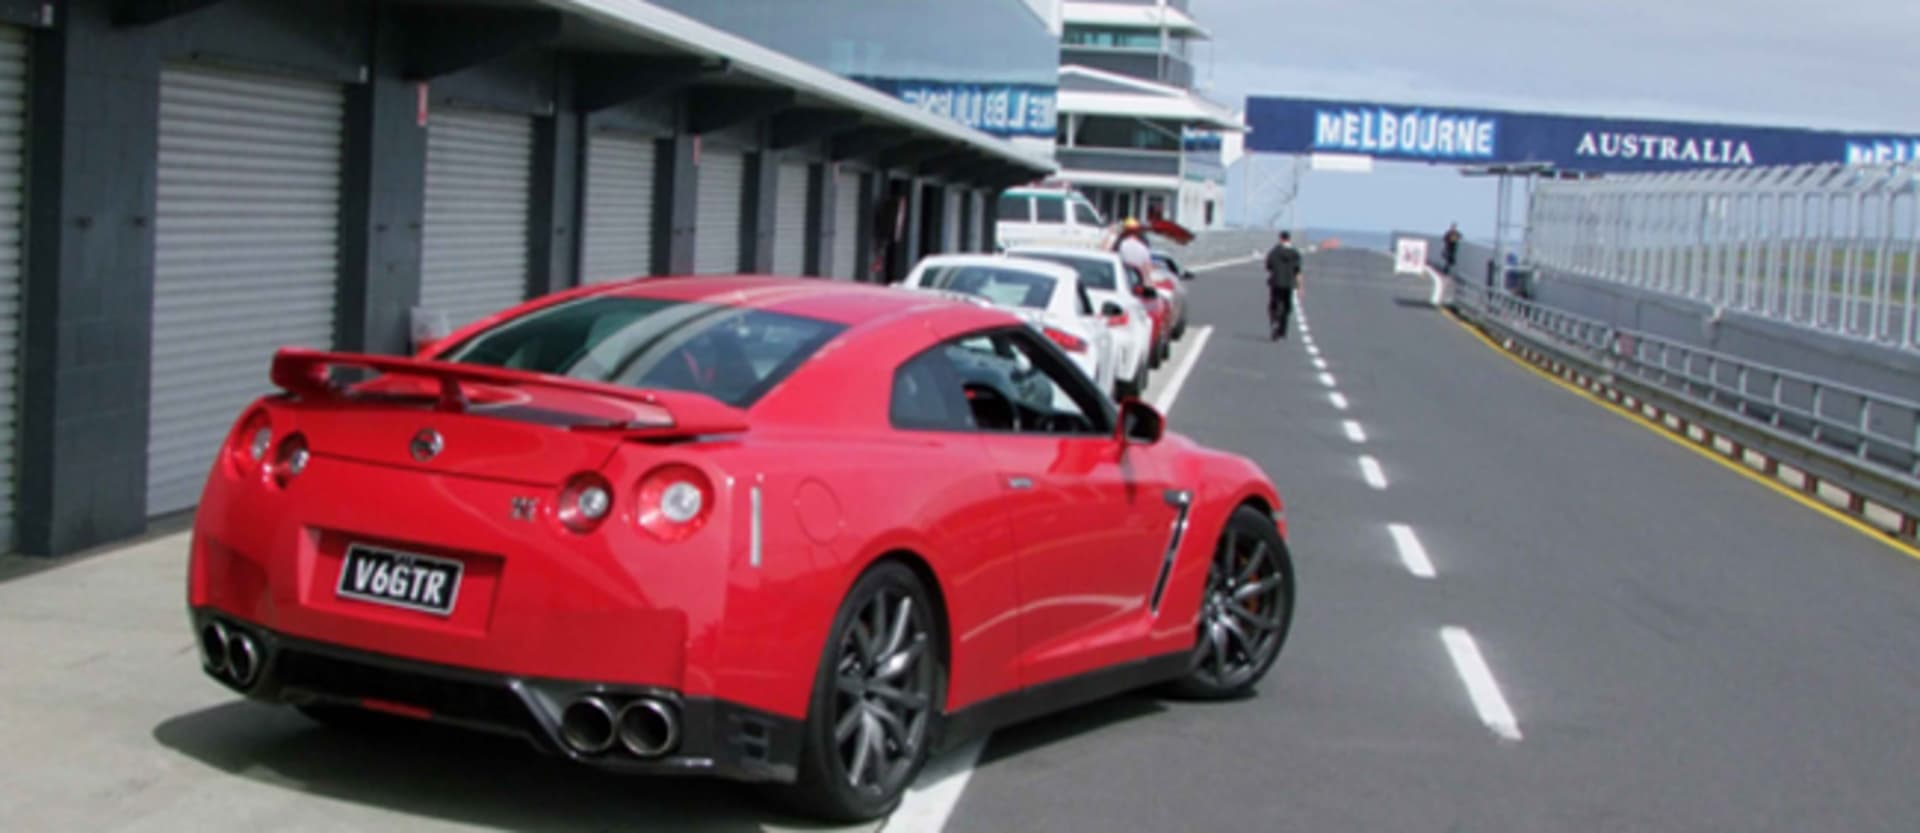 Motor's Performance Car Cup 2011 live blog - day 2: morning